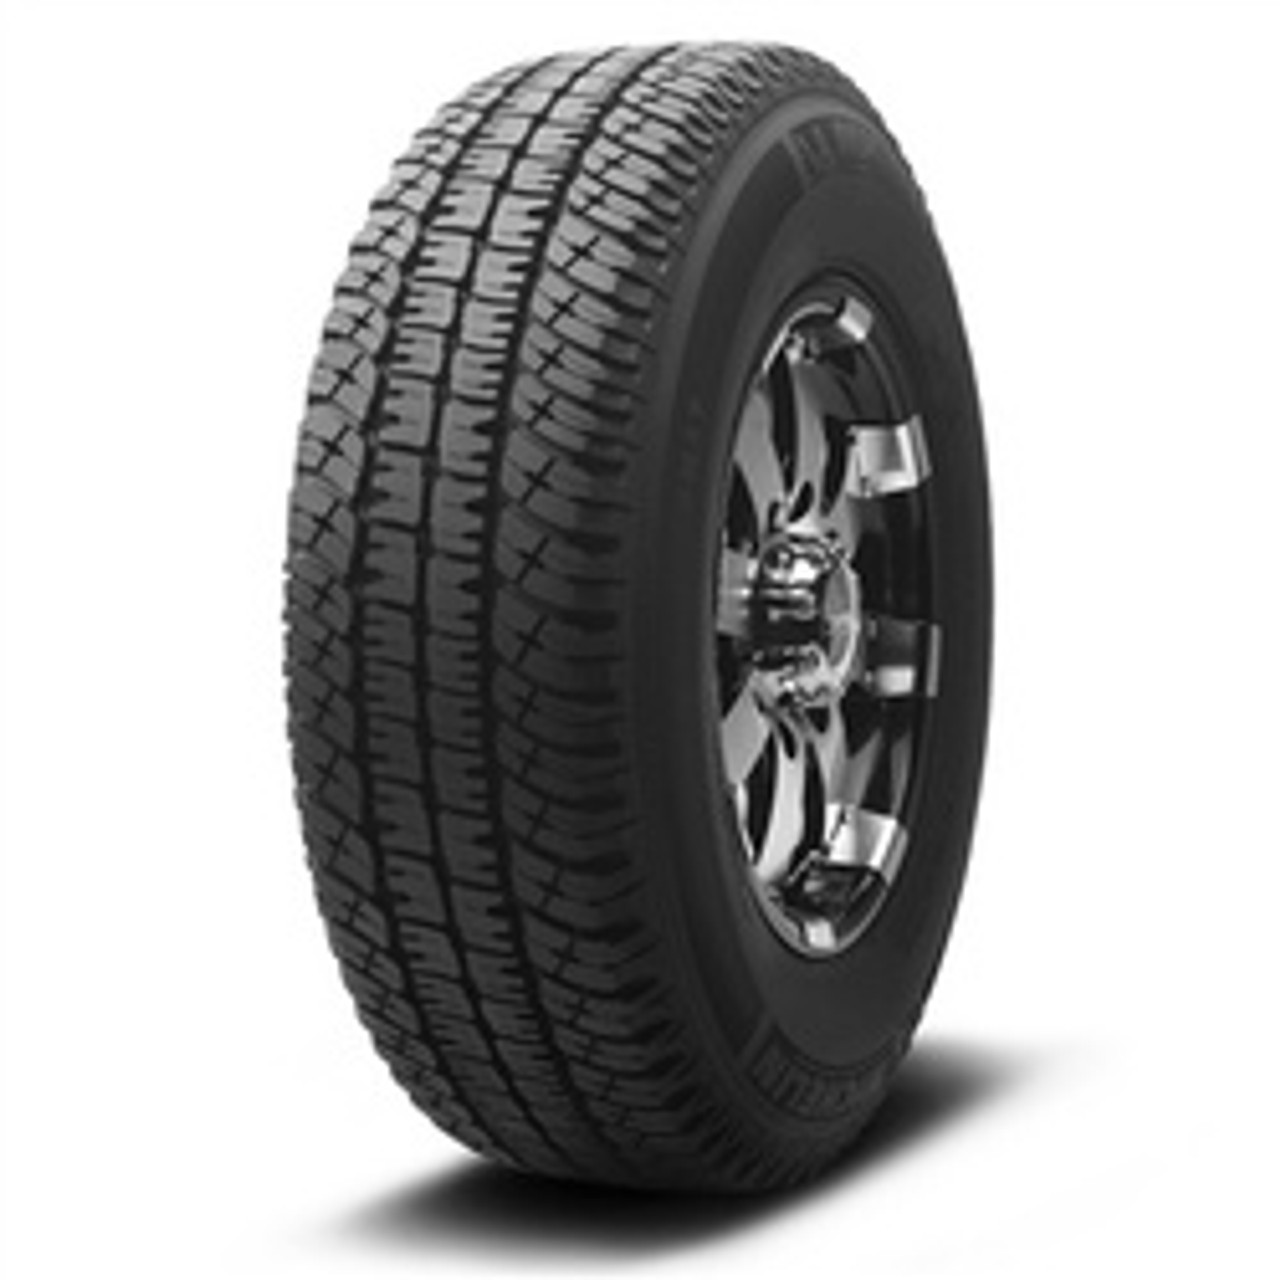 Cheapest Tires Online Free Shipping >> Michelin® LTX A/T2 275/70R18 Tires   32157   275 70 18 Tire